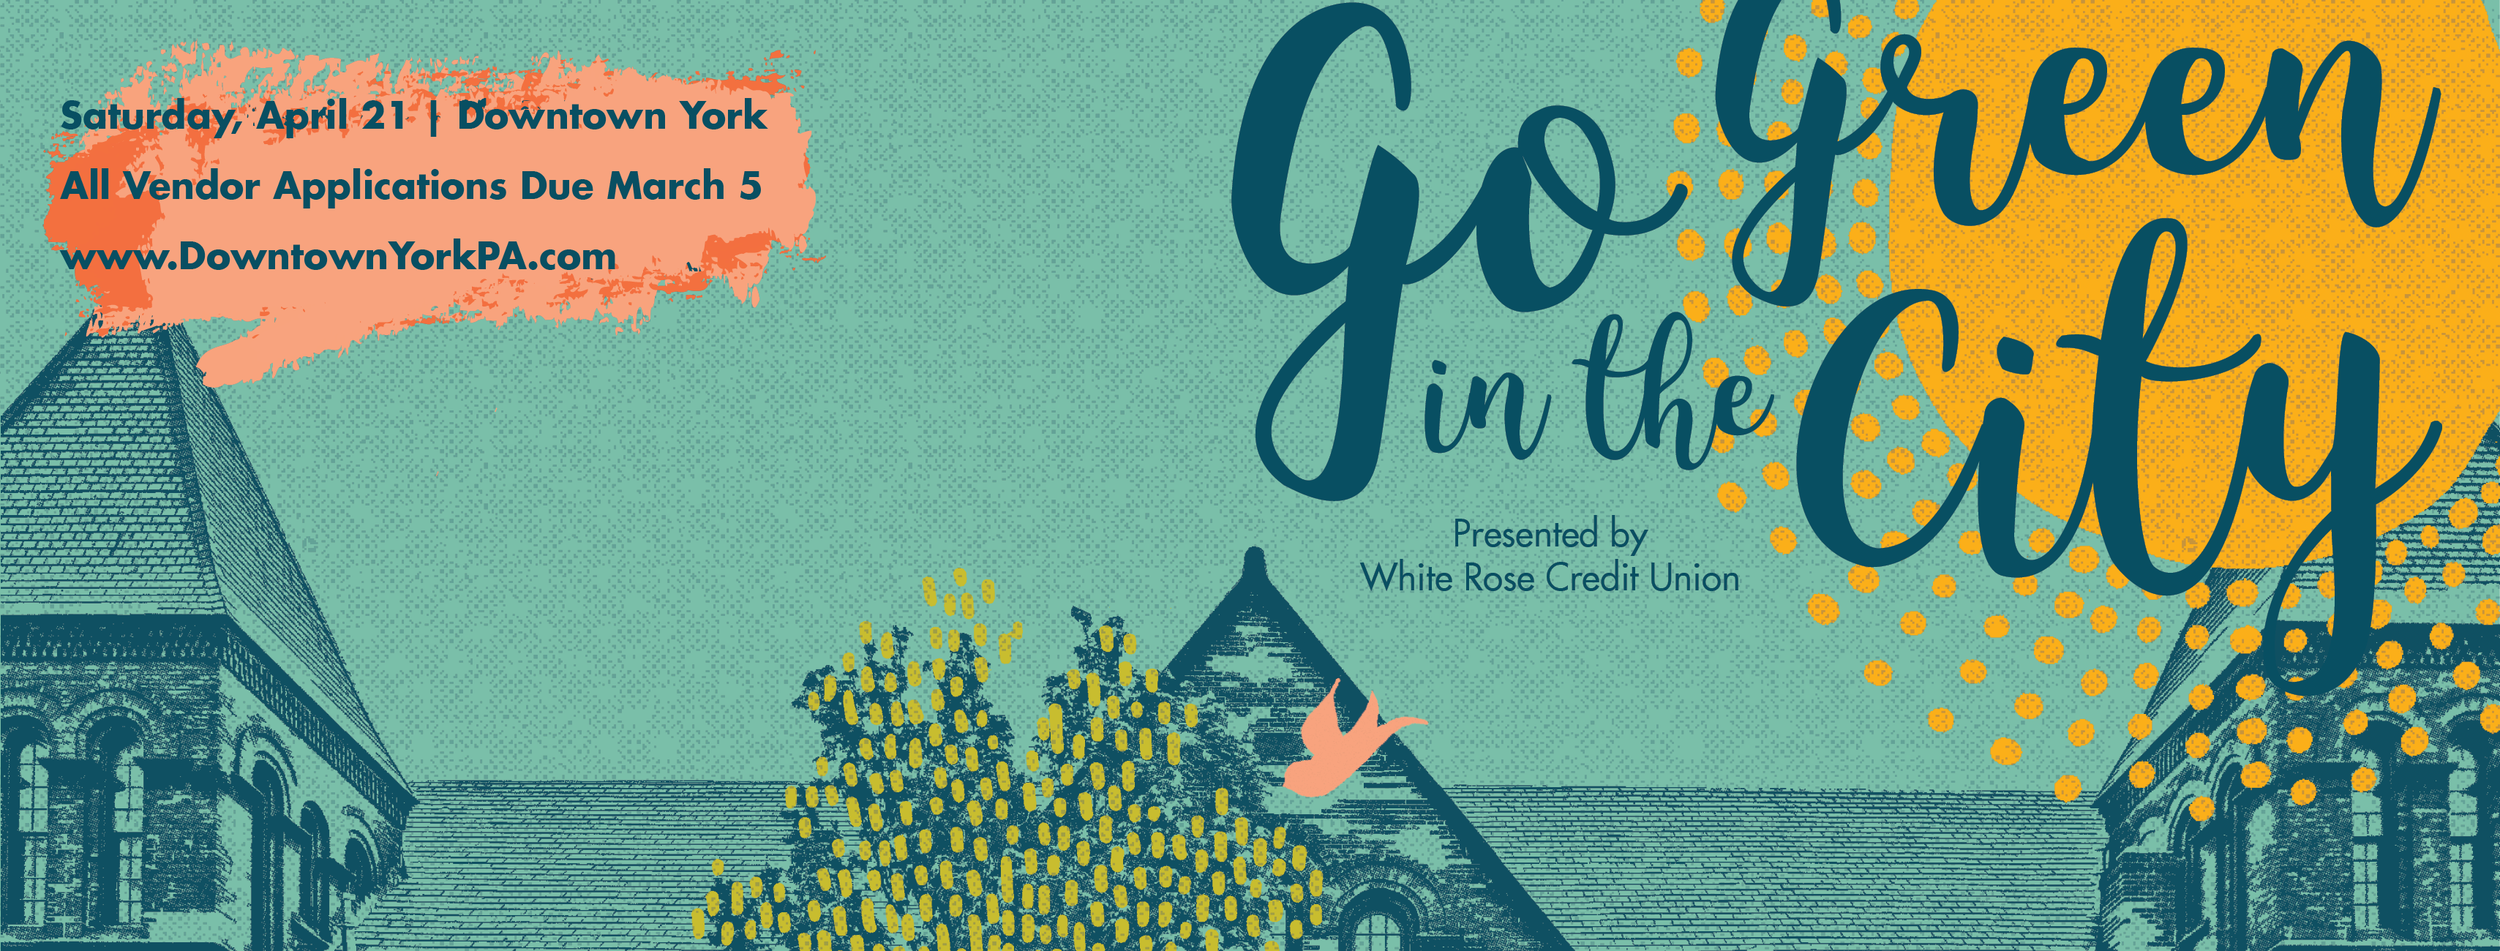 Downtown Inc is seeking vendors for the 10th Annual Go Green in the City Presented by White Rose Credit Union.